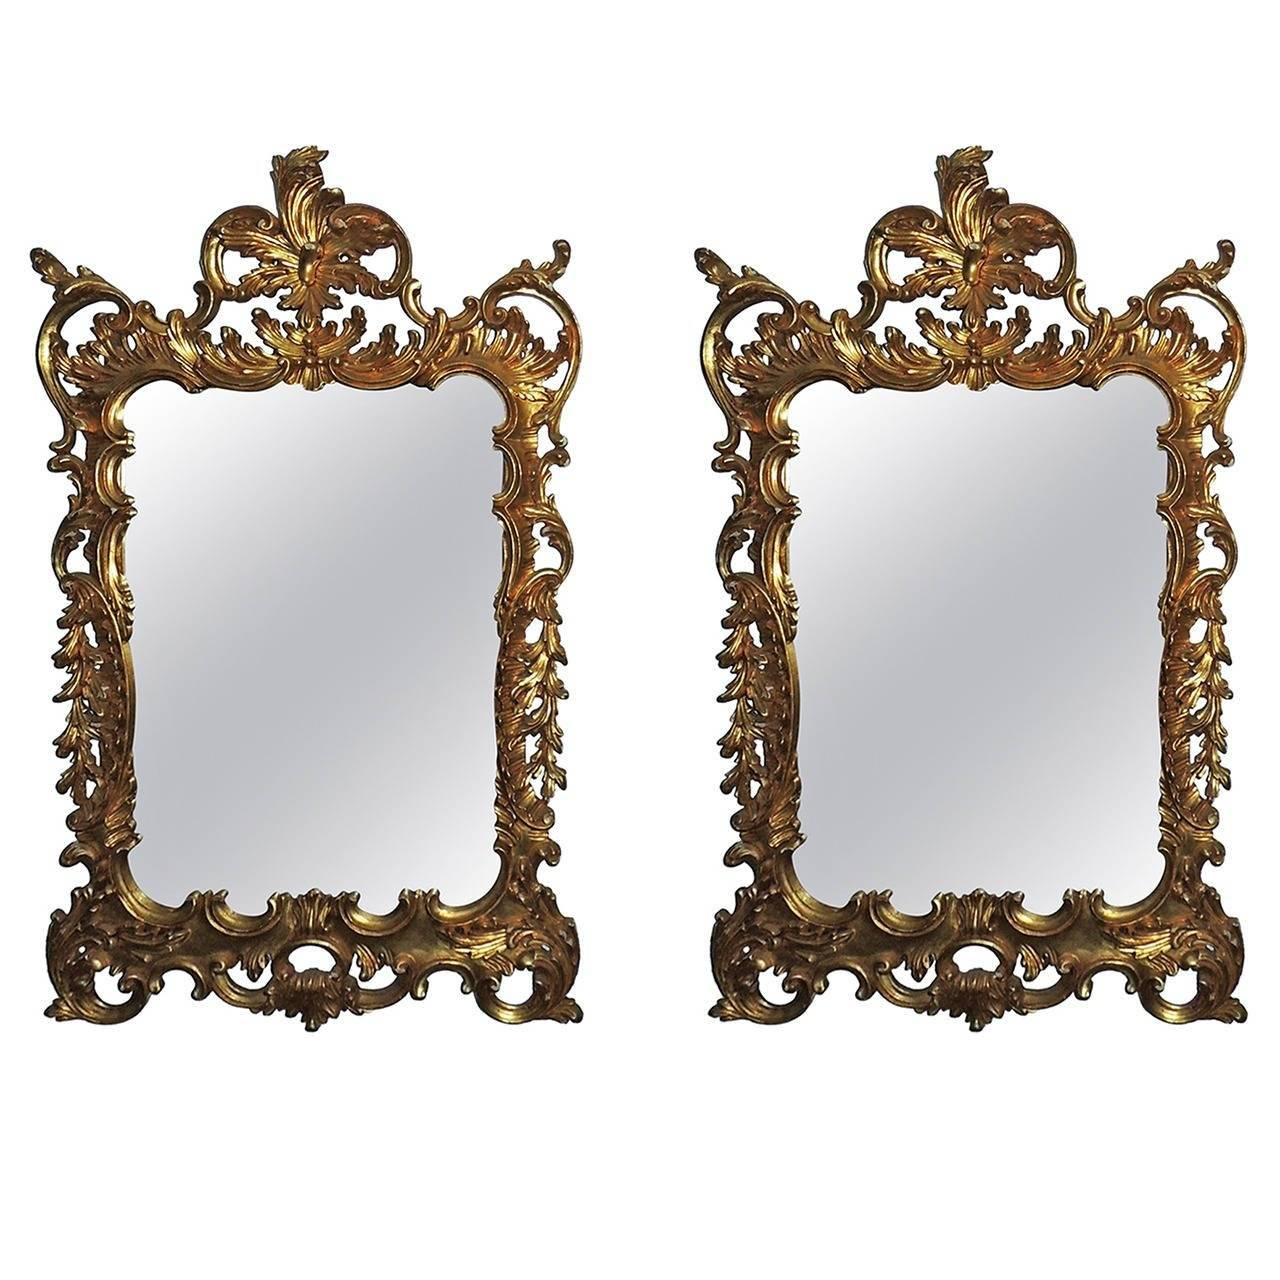 Wonderful Pair Of Italian Gilt Carved Wood Rococo Mirrors With in Rococo Mirrors (Image 24 of 25)